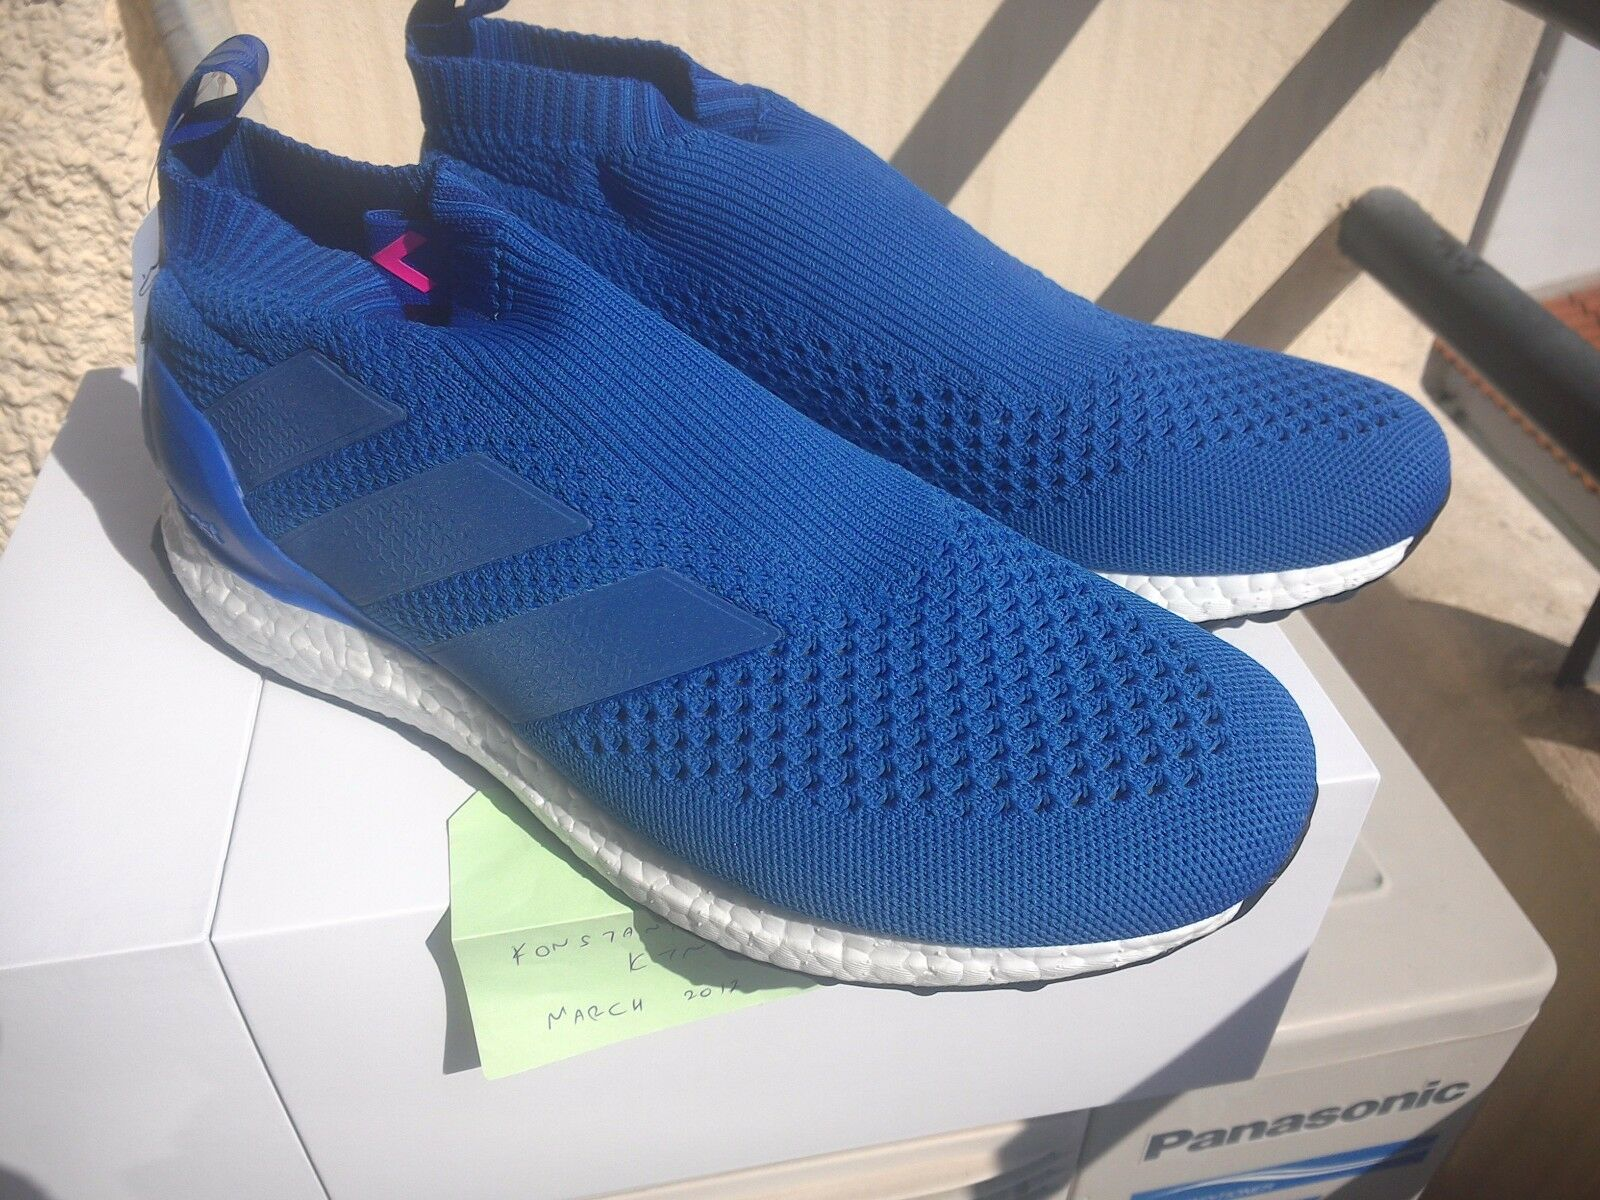 Adidas ACE 17 Purecontrol Ultra Boost Blue BY9090 LTD US 10.5  (SEND OFFERS)